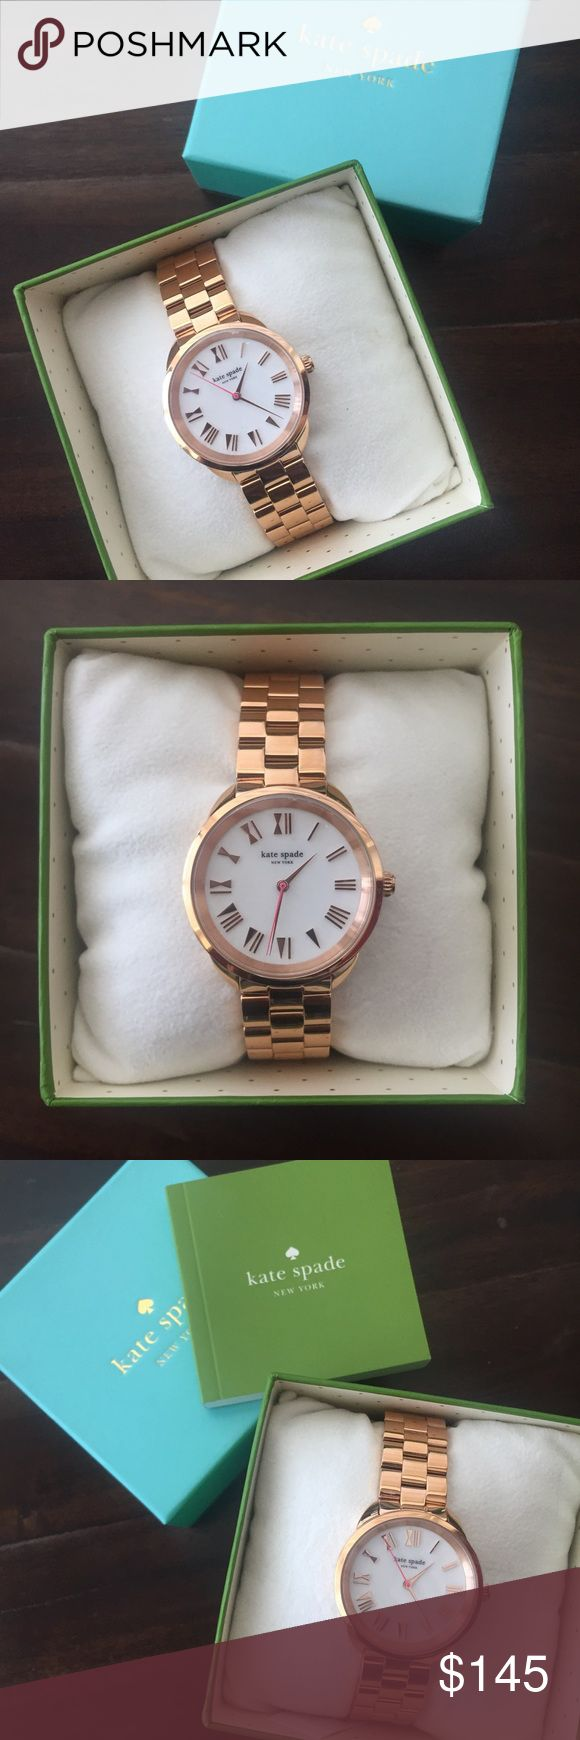 NIB Kate Spade Rose Gold Watch BRAND NEW Kate Spade New York Crosstown watch in rose gold - style # KSW1091 - bow inspired roman font - 34mm case - 16mm band width - water resistant - brand new in box, battery works, never worn! kate spade Accessories Watches